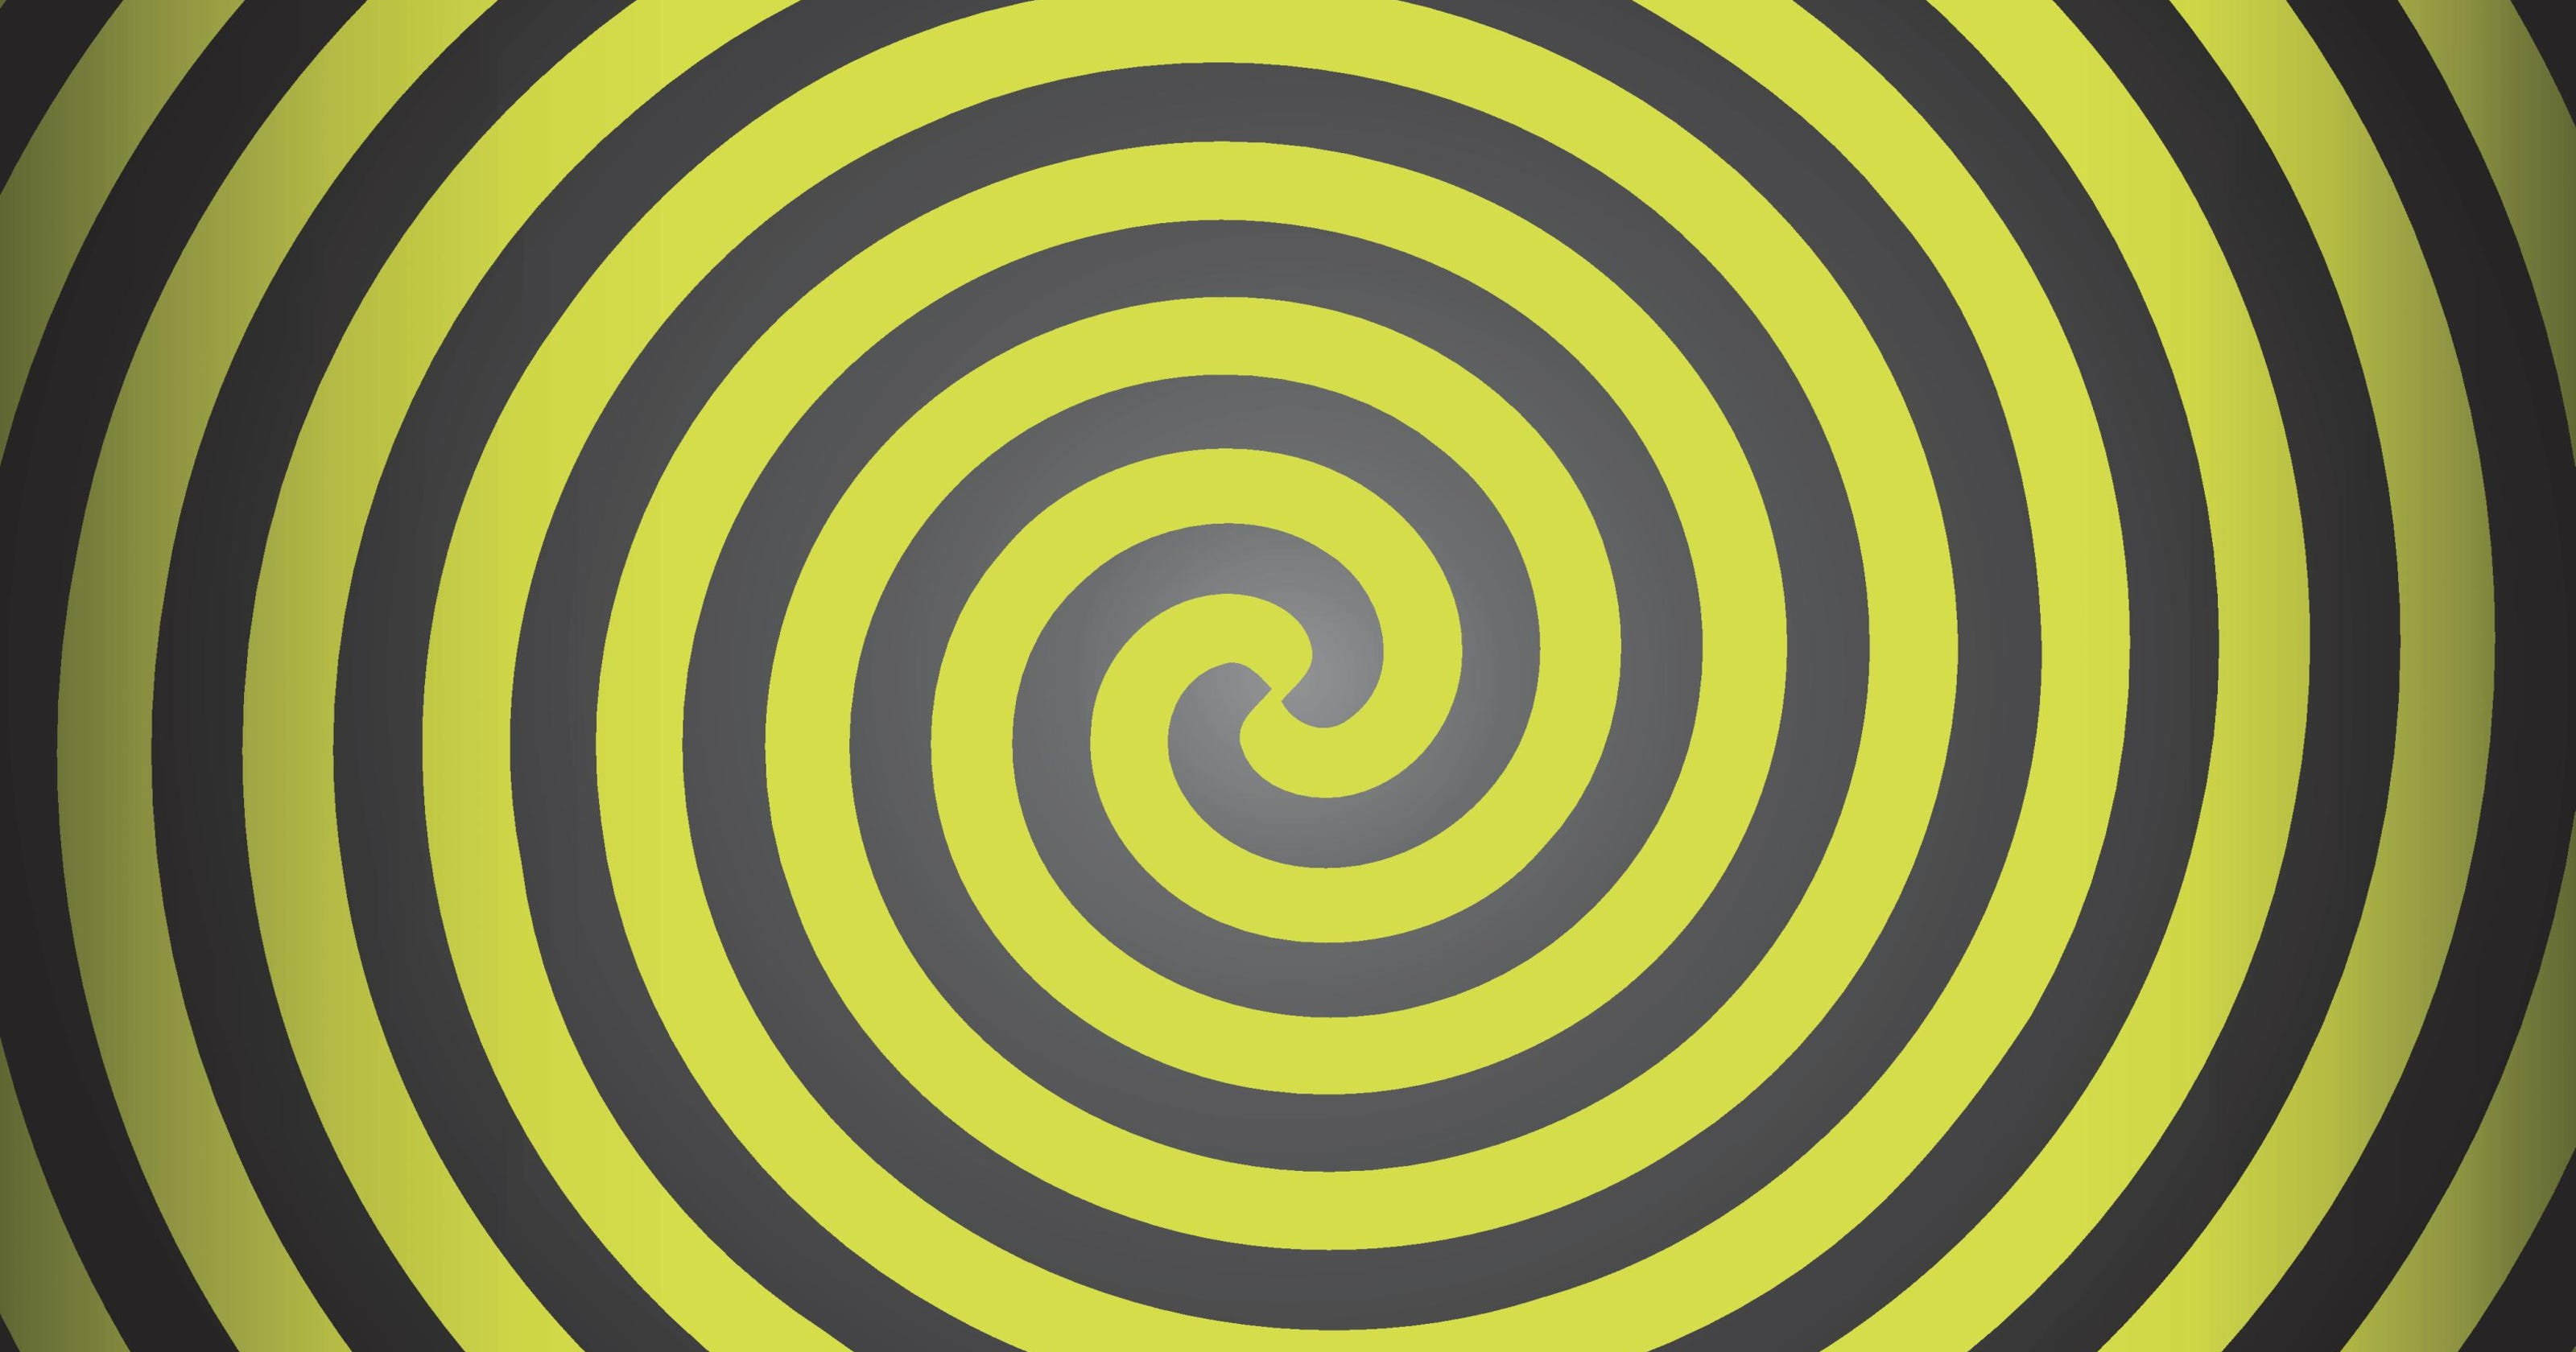 Think you can be hypnotized? Take this test